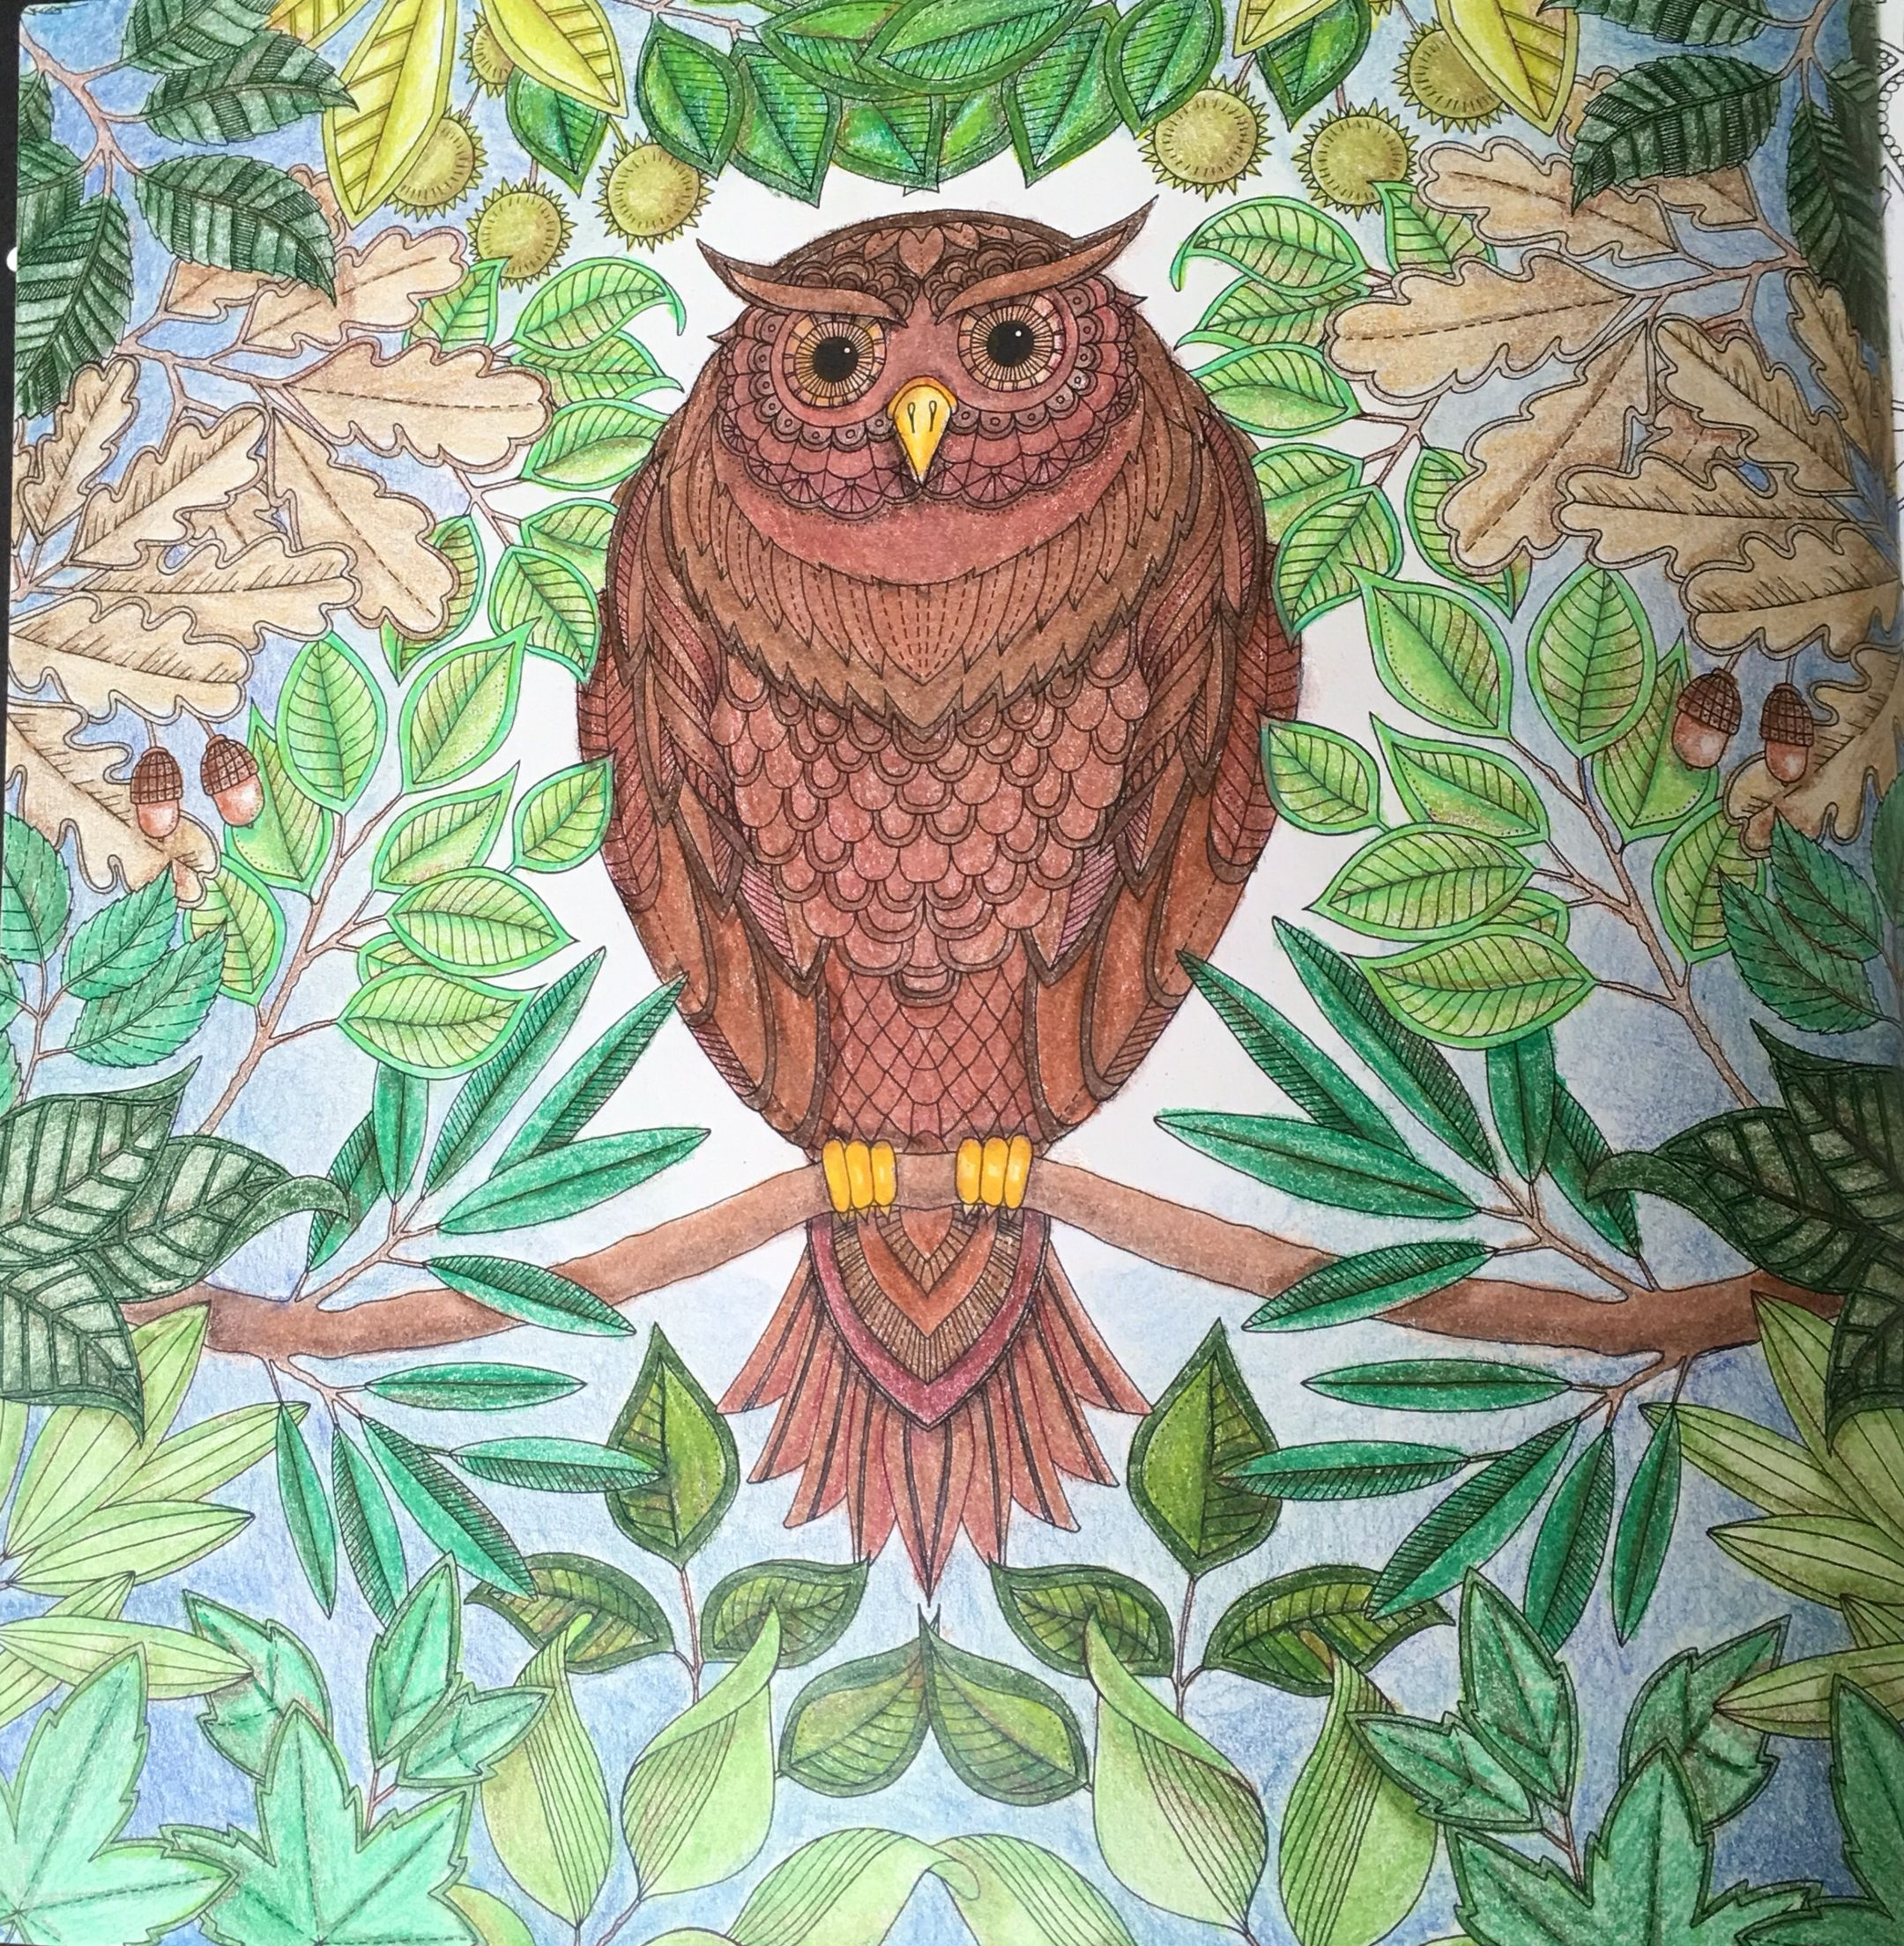 Secret Garden Coloring Book Colored Pencils